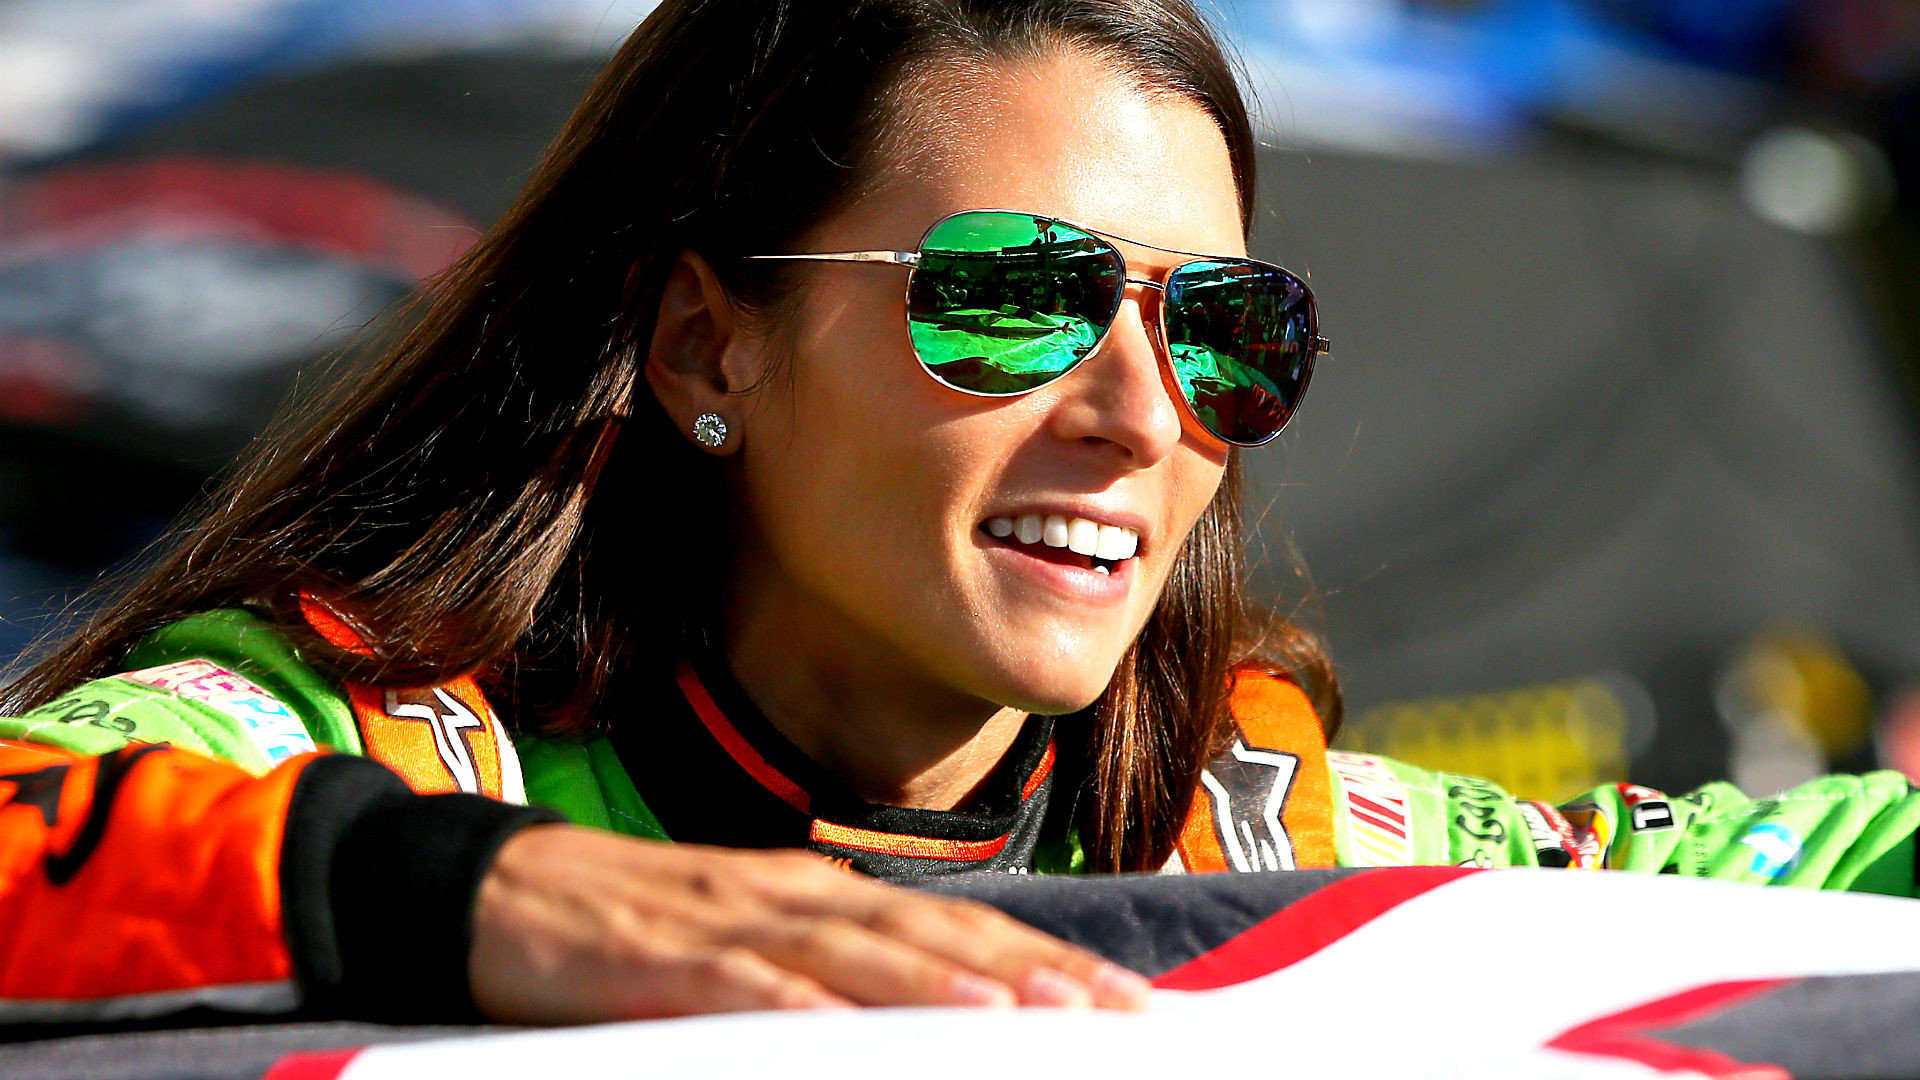 1920x1080 For Danica Patrick, sponsor Tissot fashions a more stylish new image |  NASCAR | Sporting News